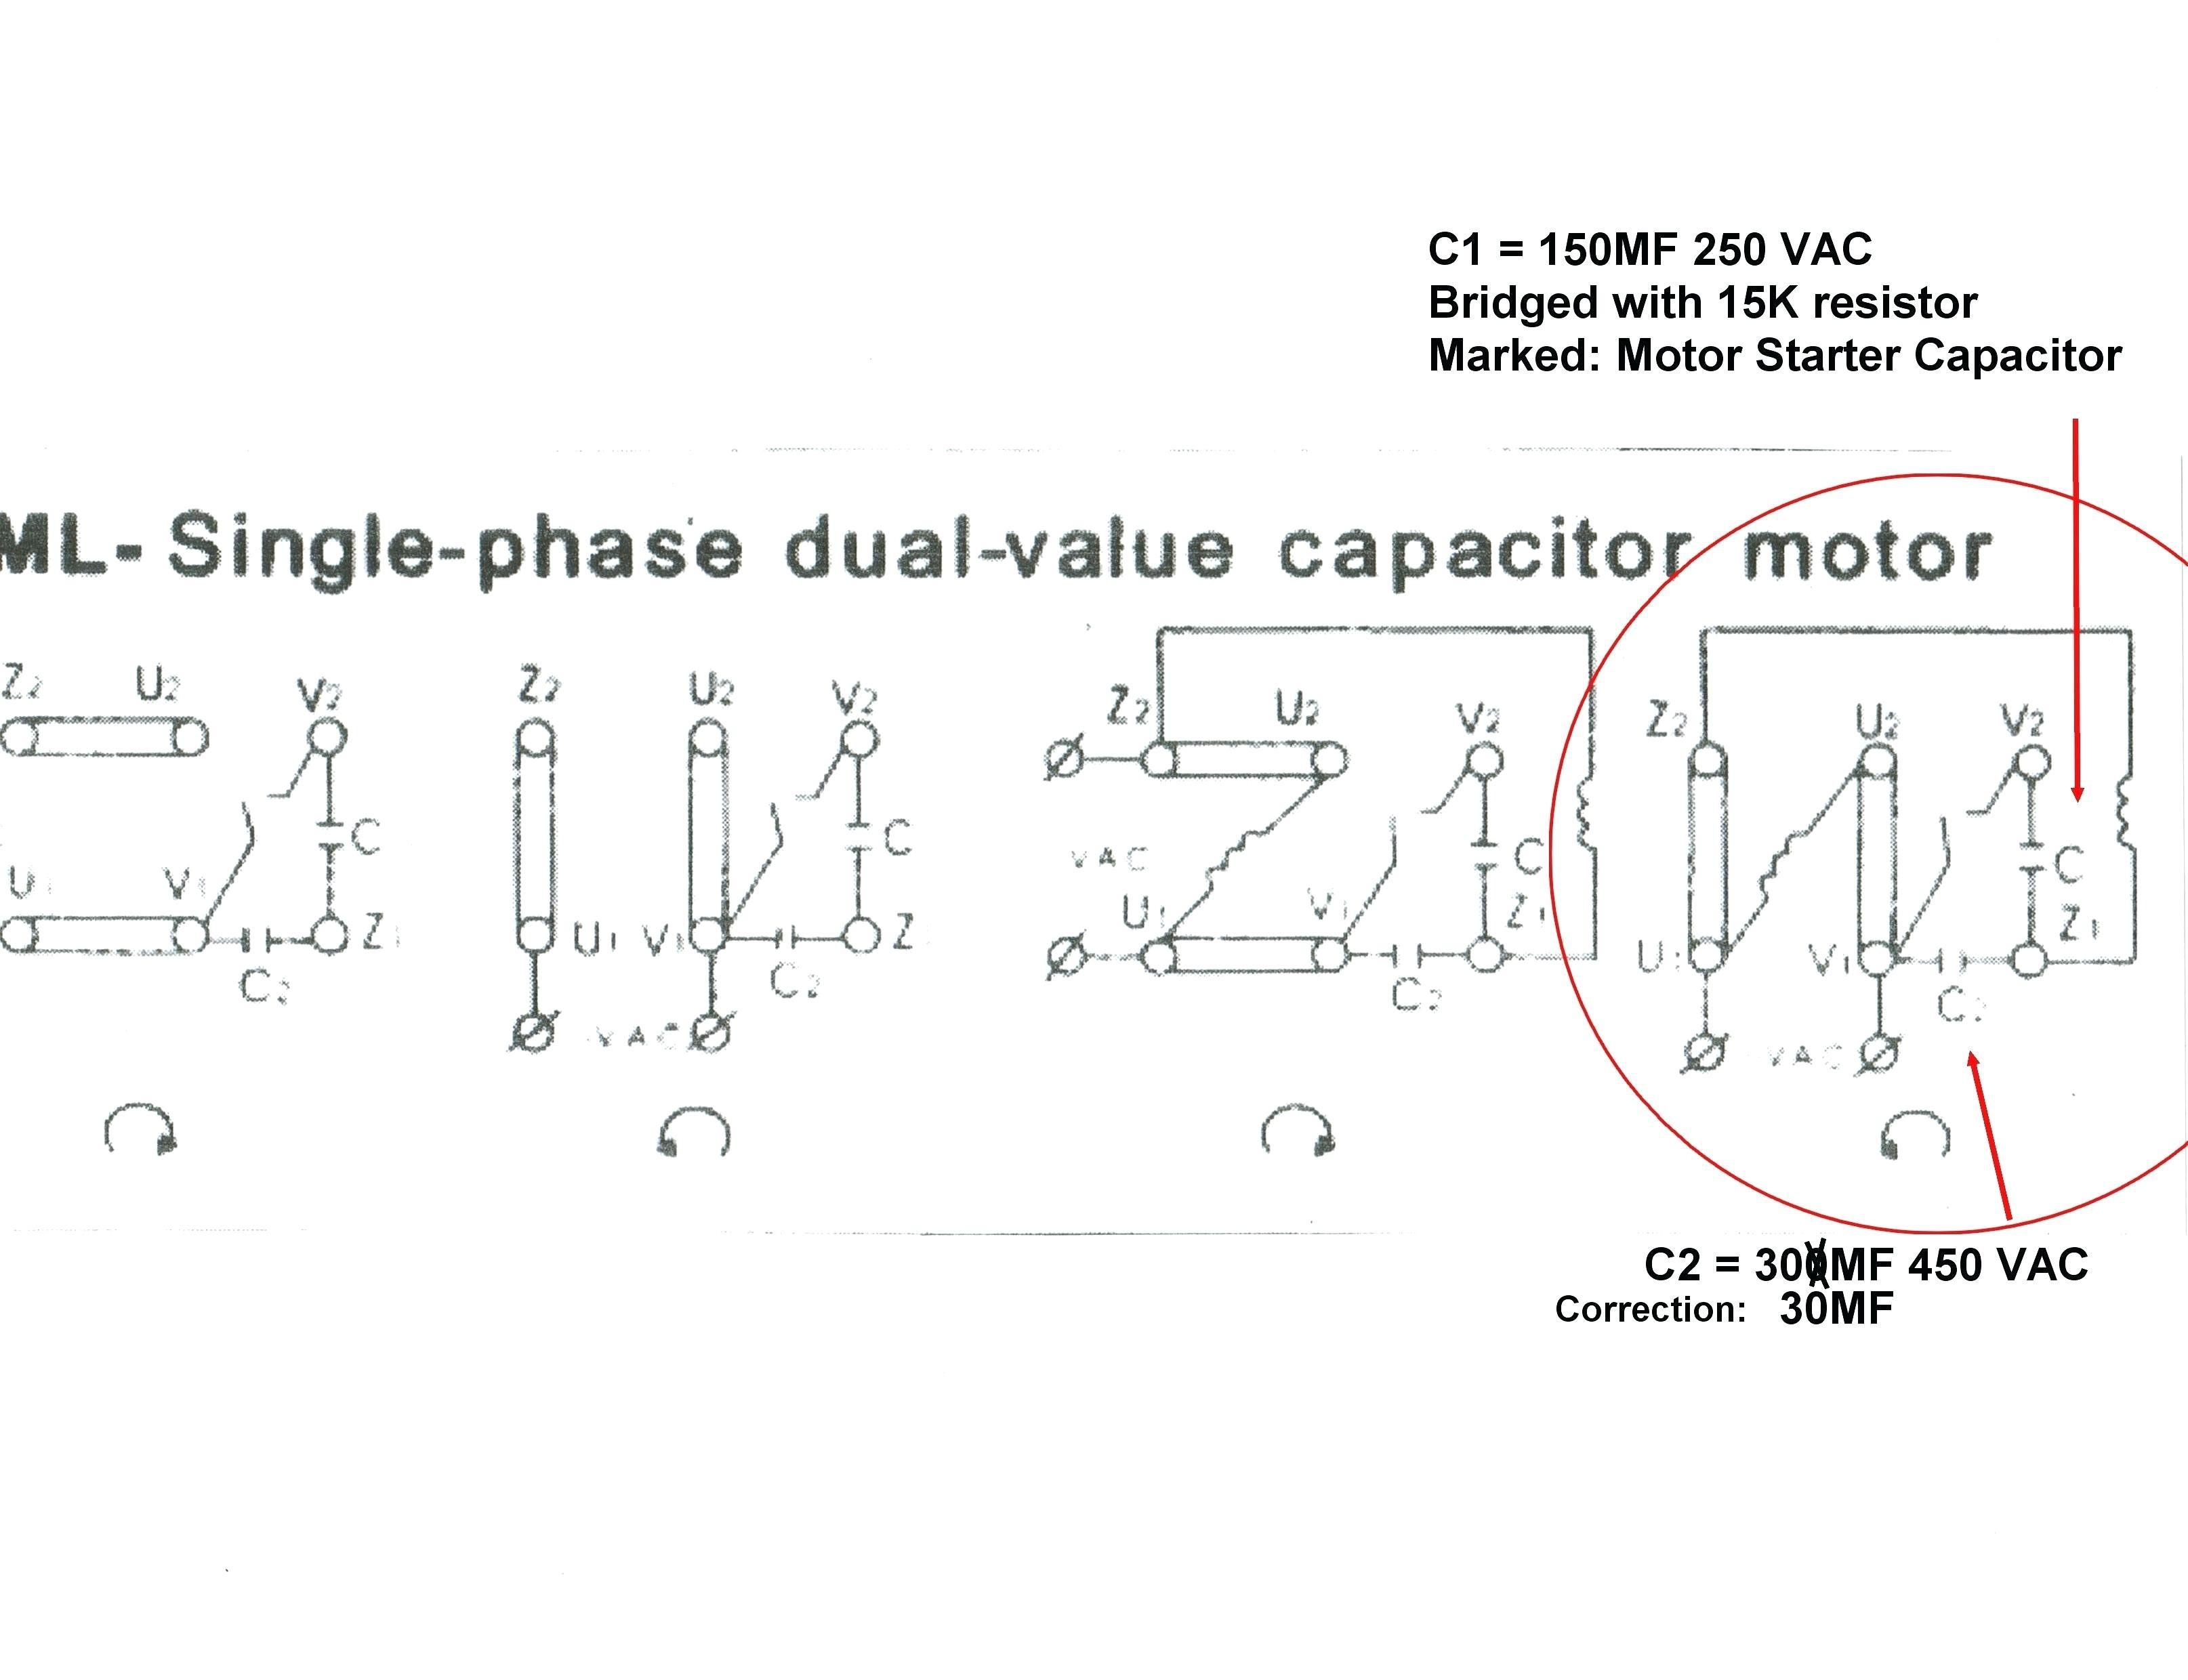 motor wiring diagrams single phase on 110 volt electric motor wiring110 single  phase motor wiring diagrams